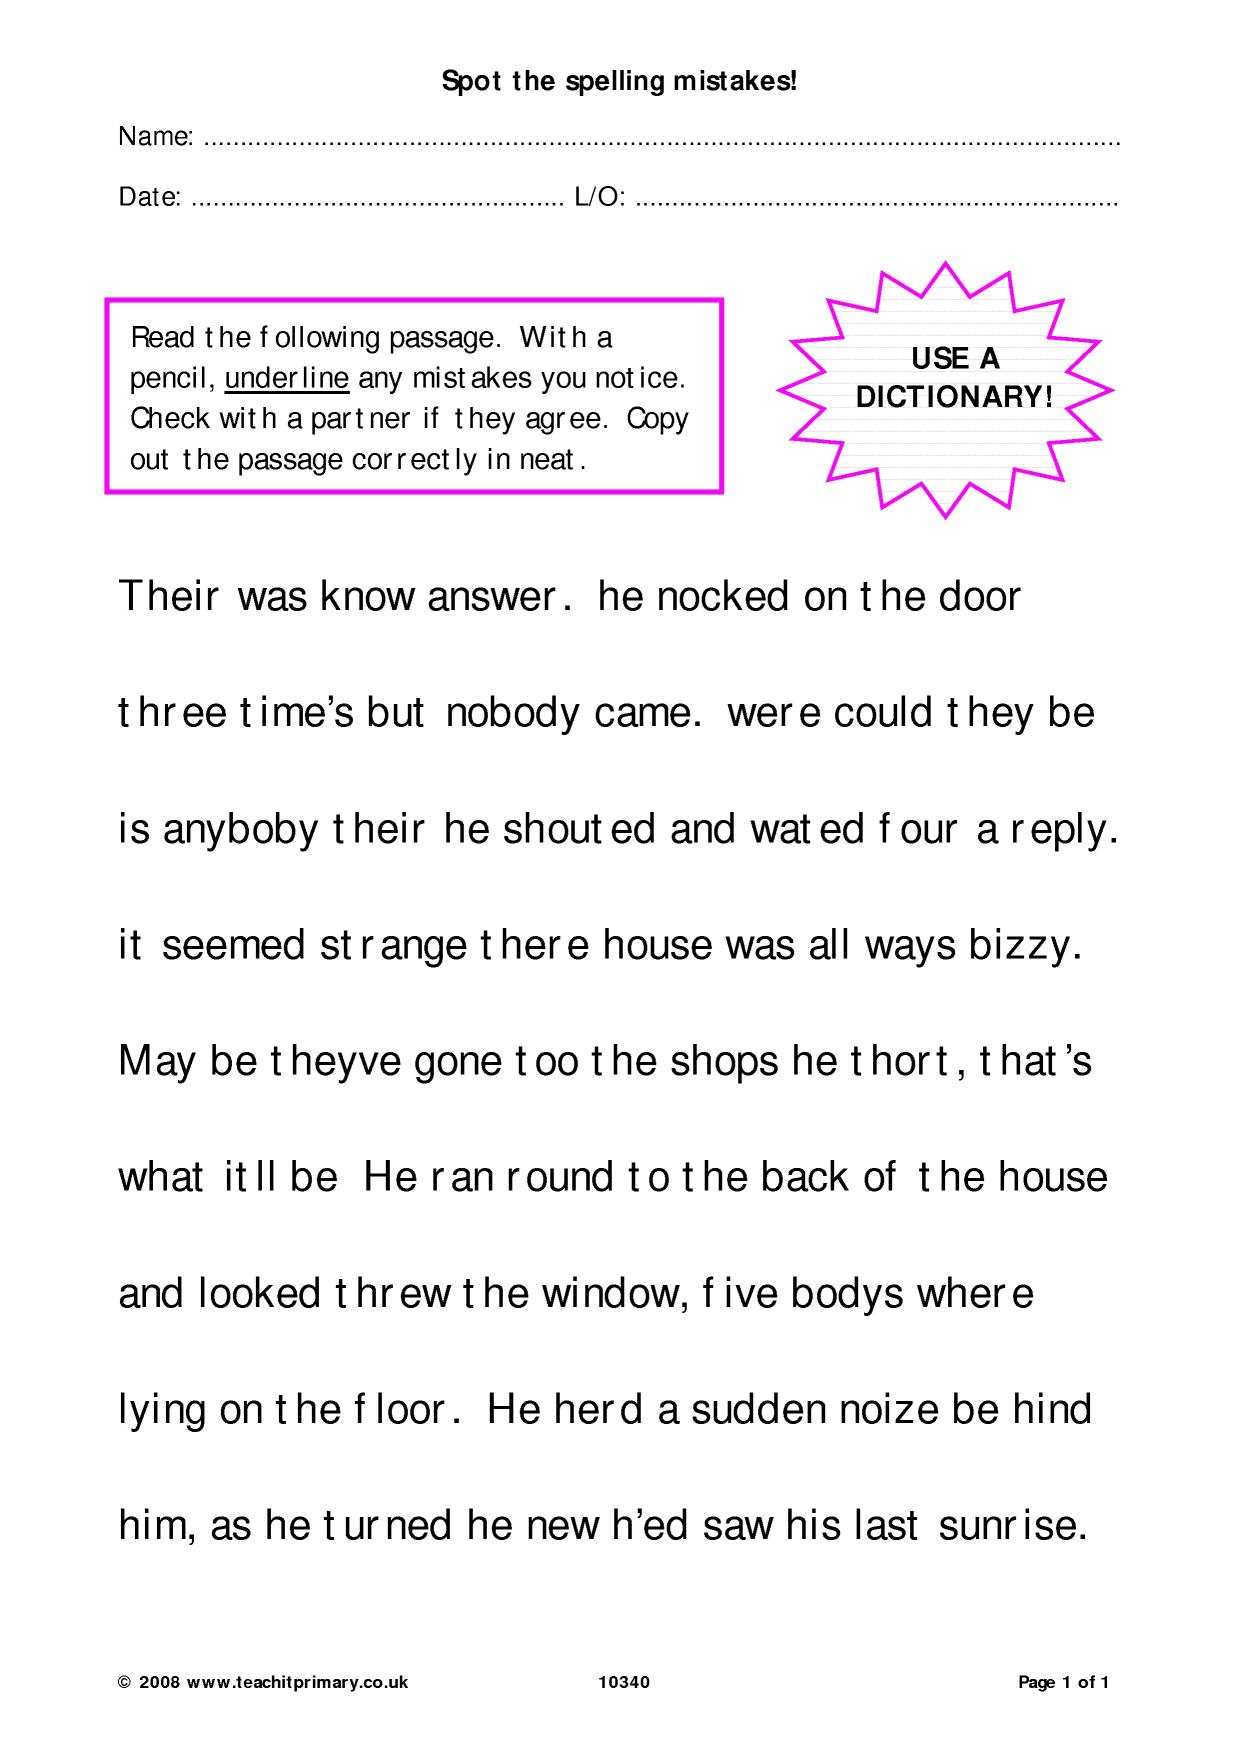 Proofreading Practice Ks2